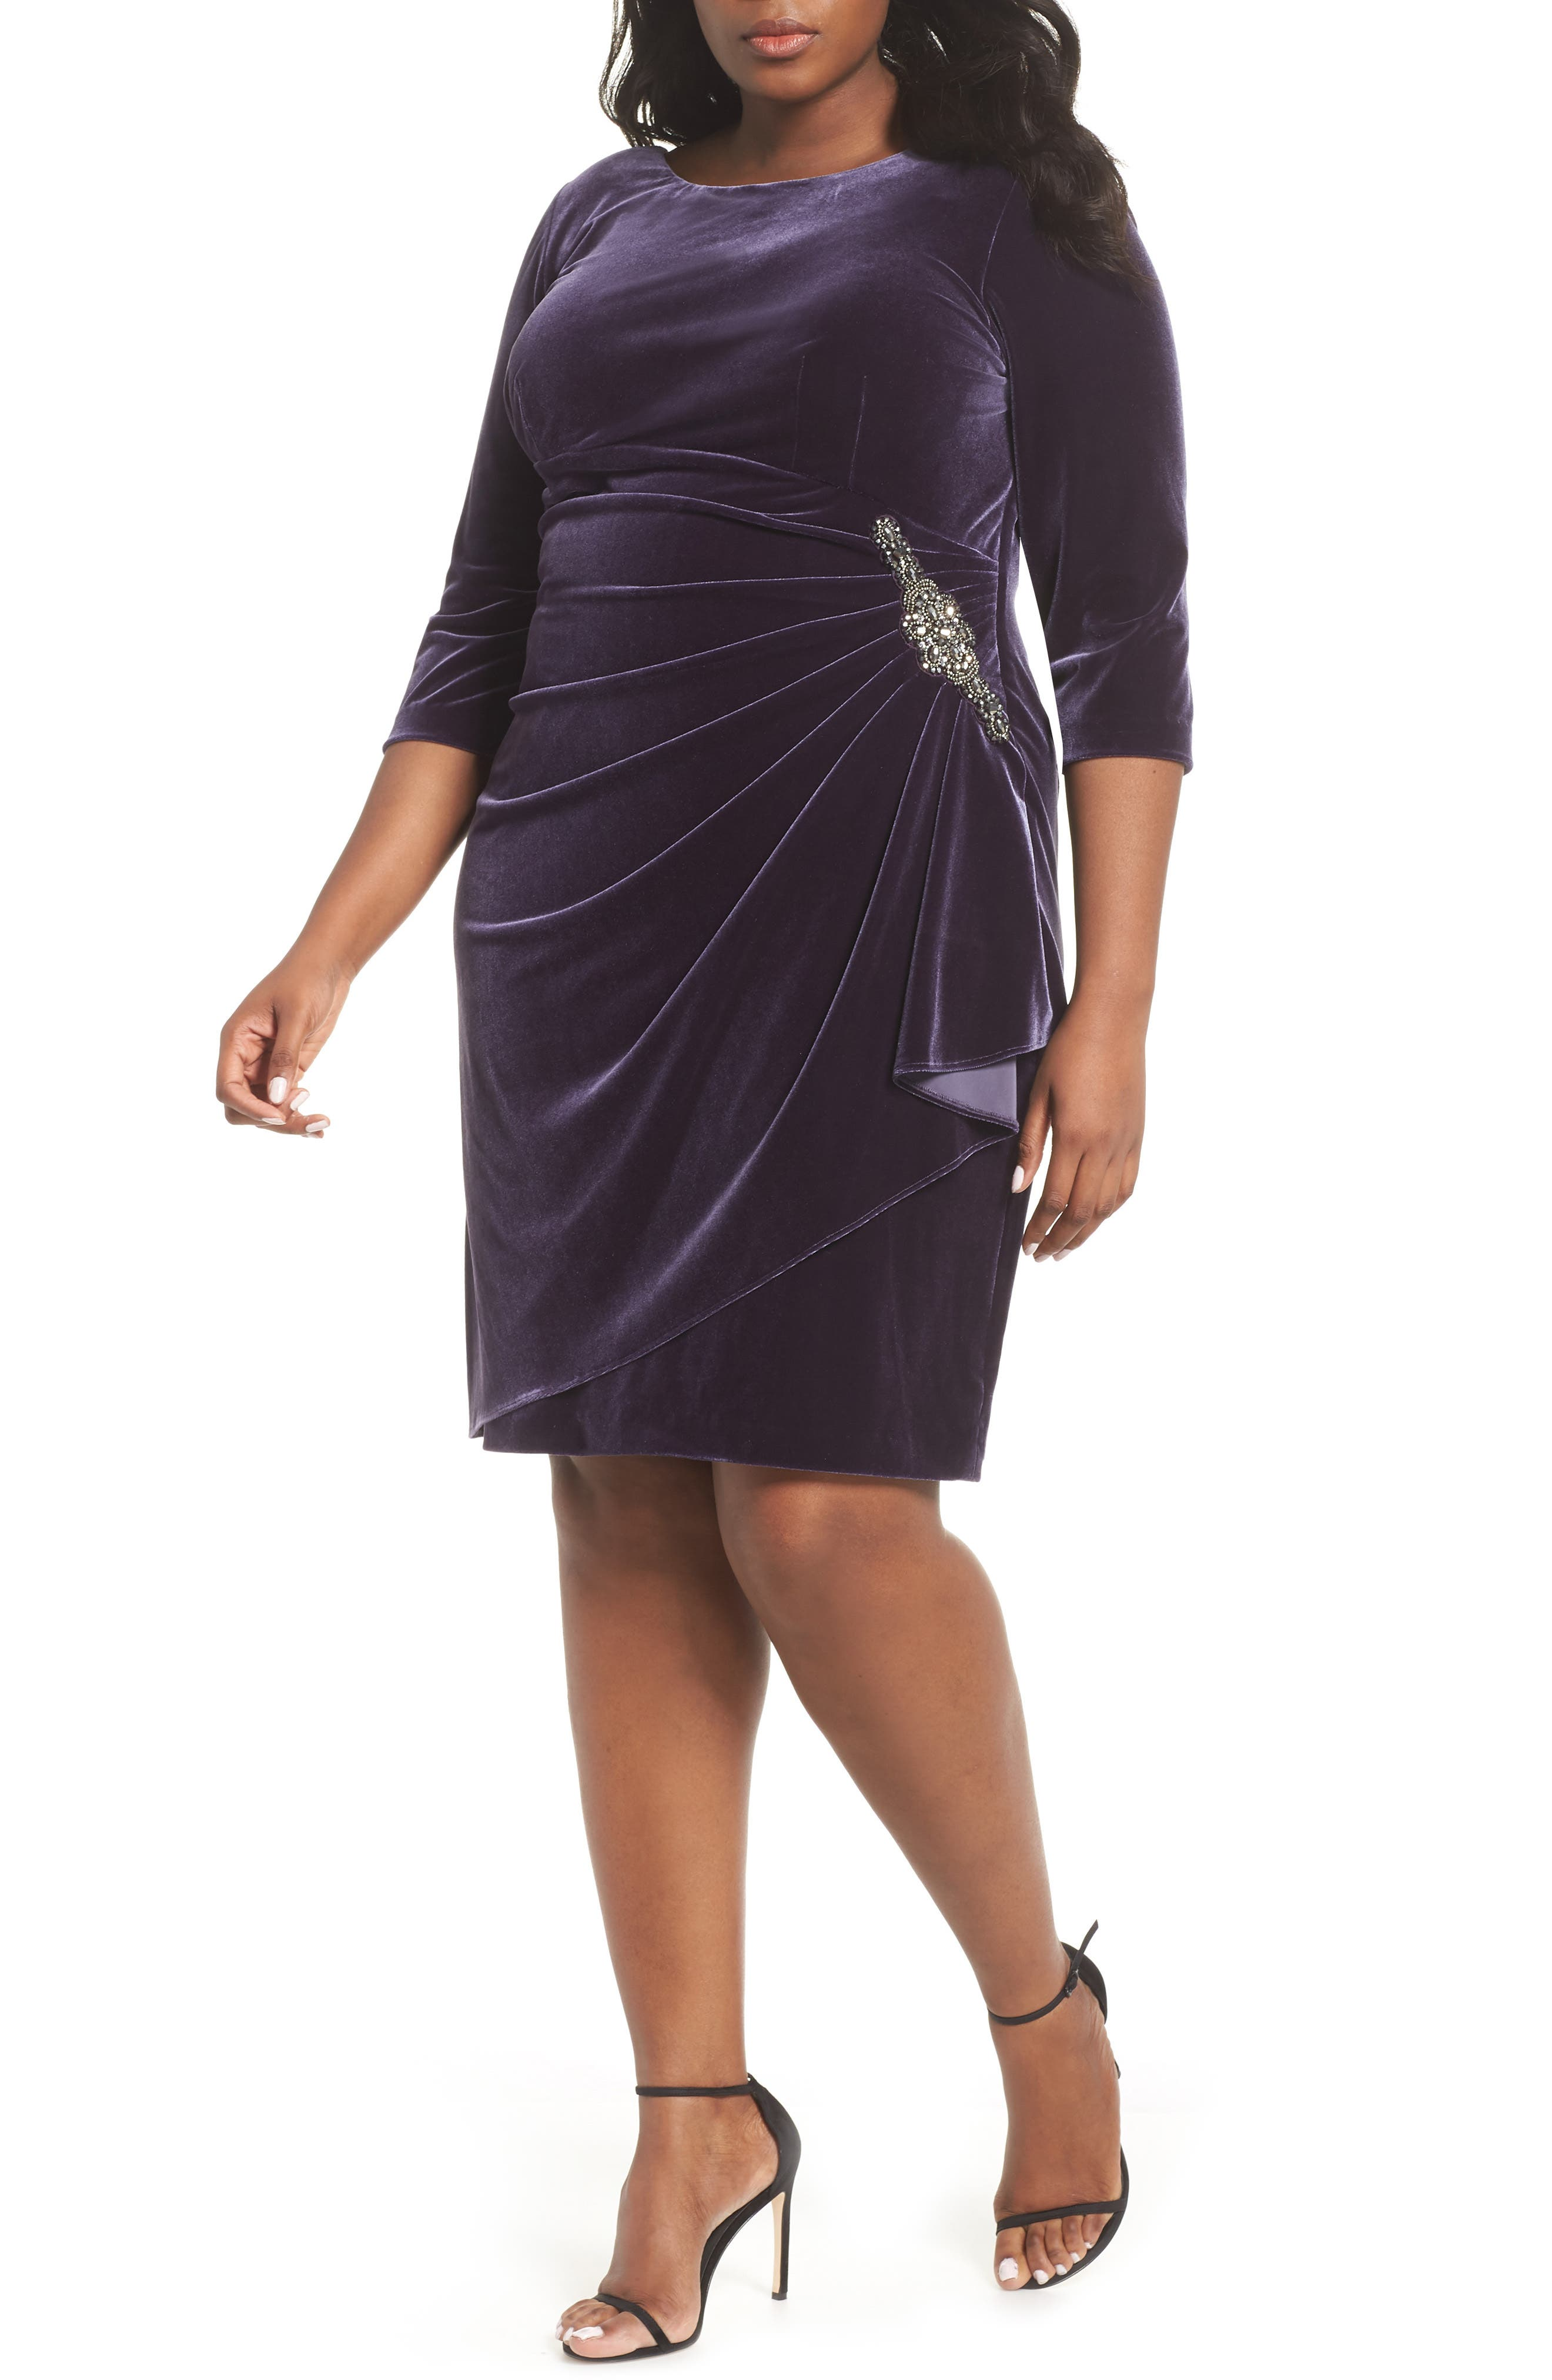 1940s Plus Size Fashion: Style Advice from 1940s to Today Plus Size Womens Alex Evening Velvet Sheath Dress $169.00 AT vintagedancer.com